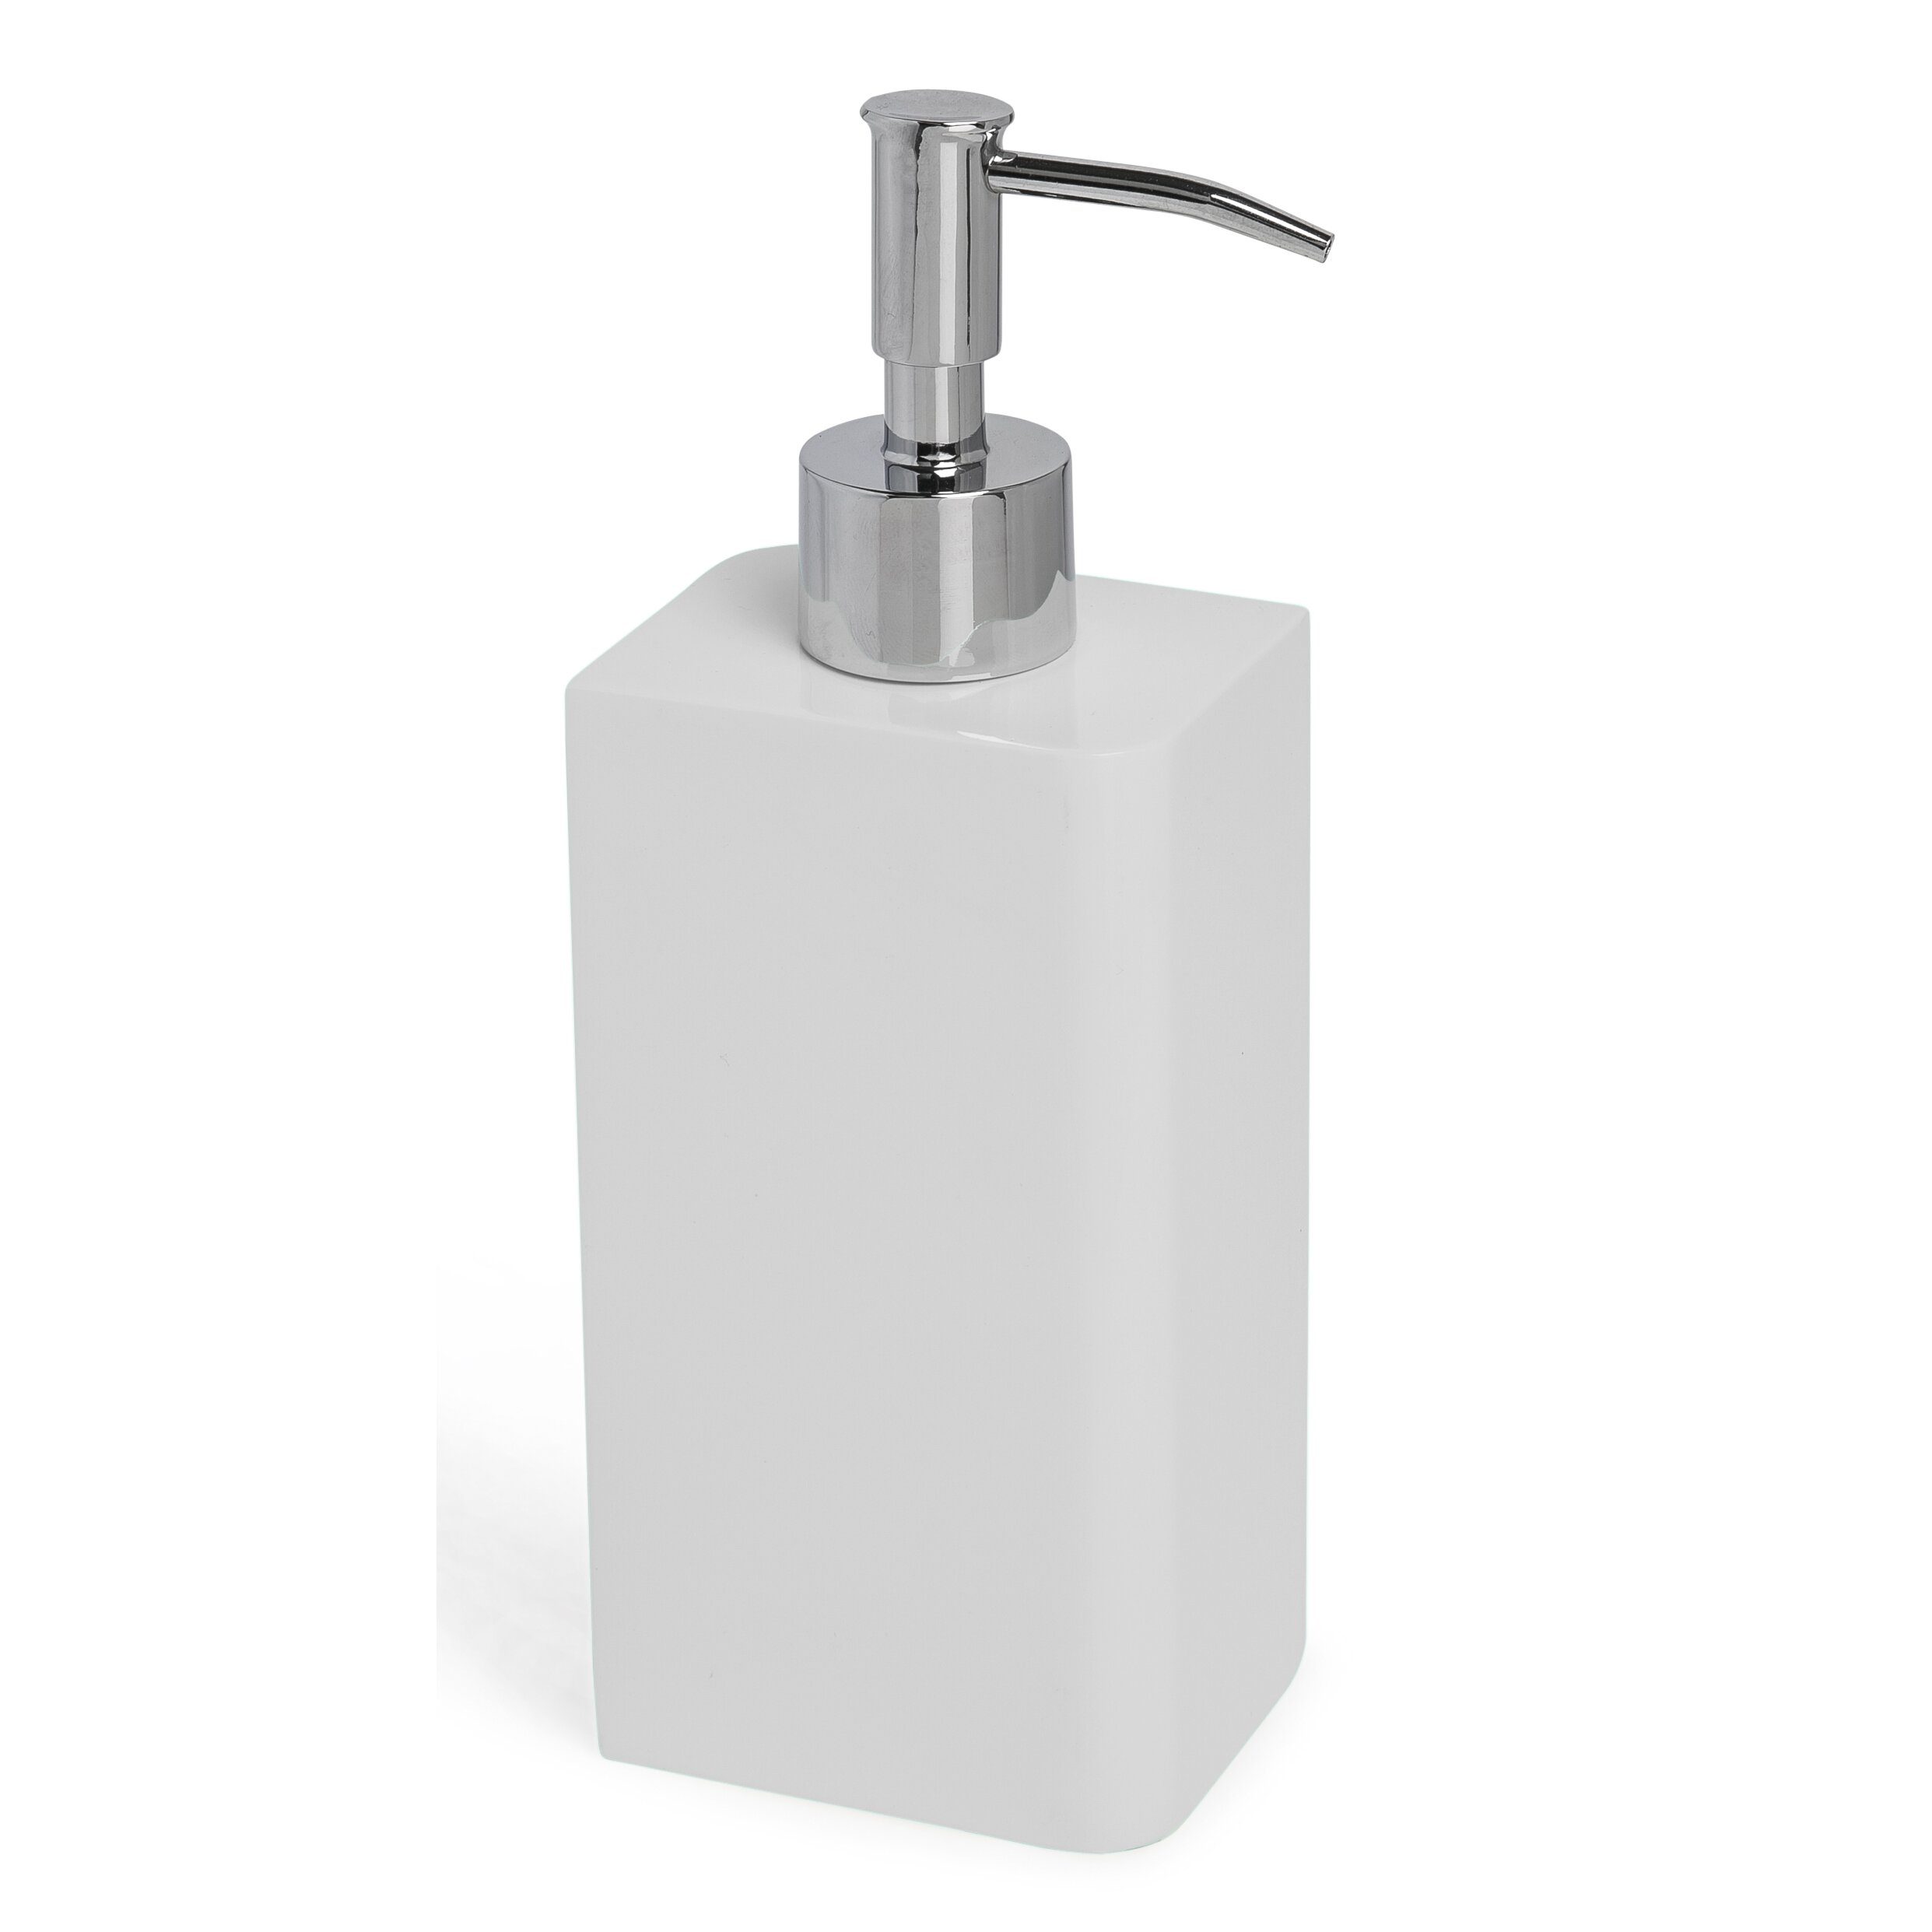 Kassatex lacca collection bath accessories soap lotion for Bathroom soap dispensers bath accessories